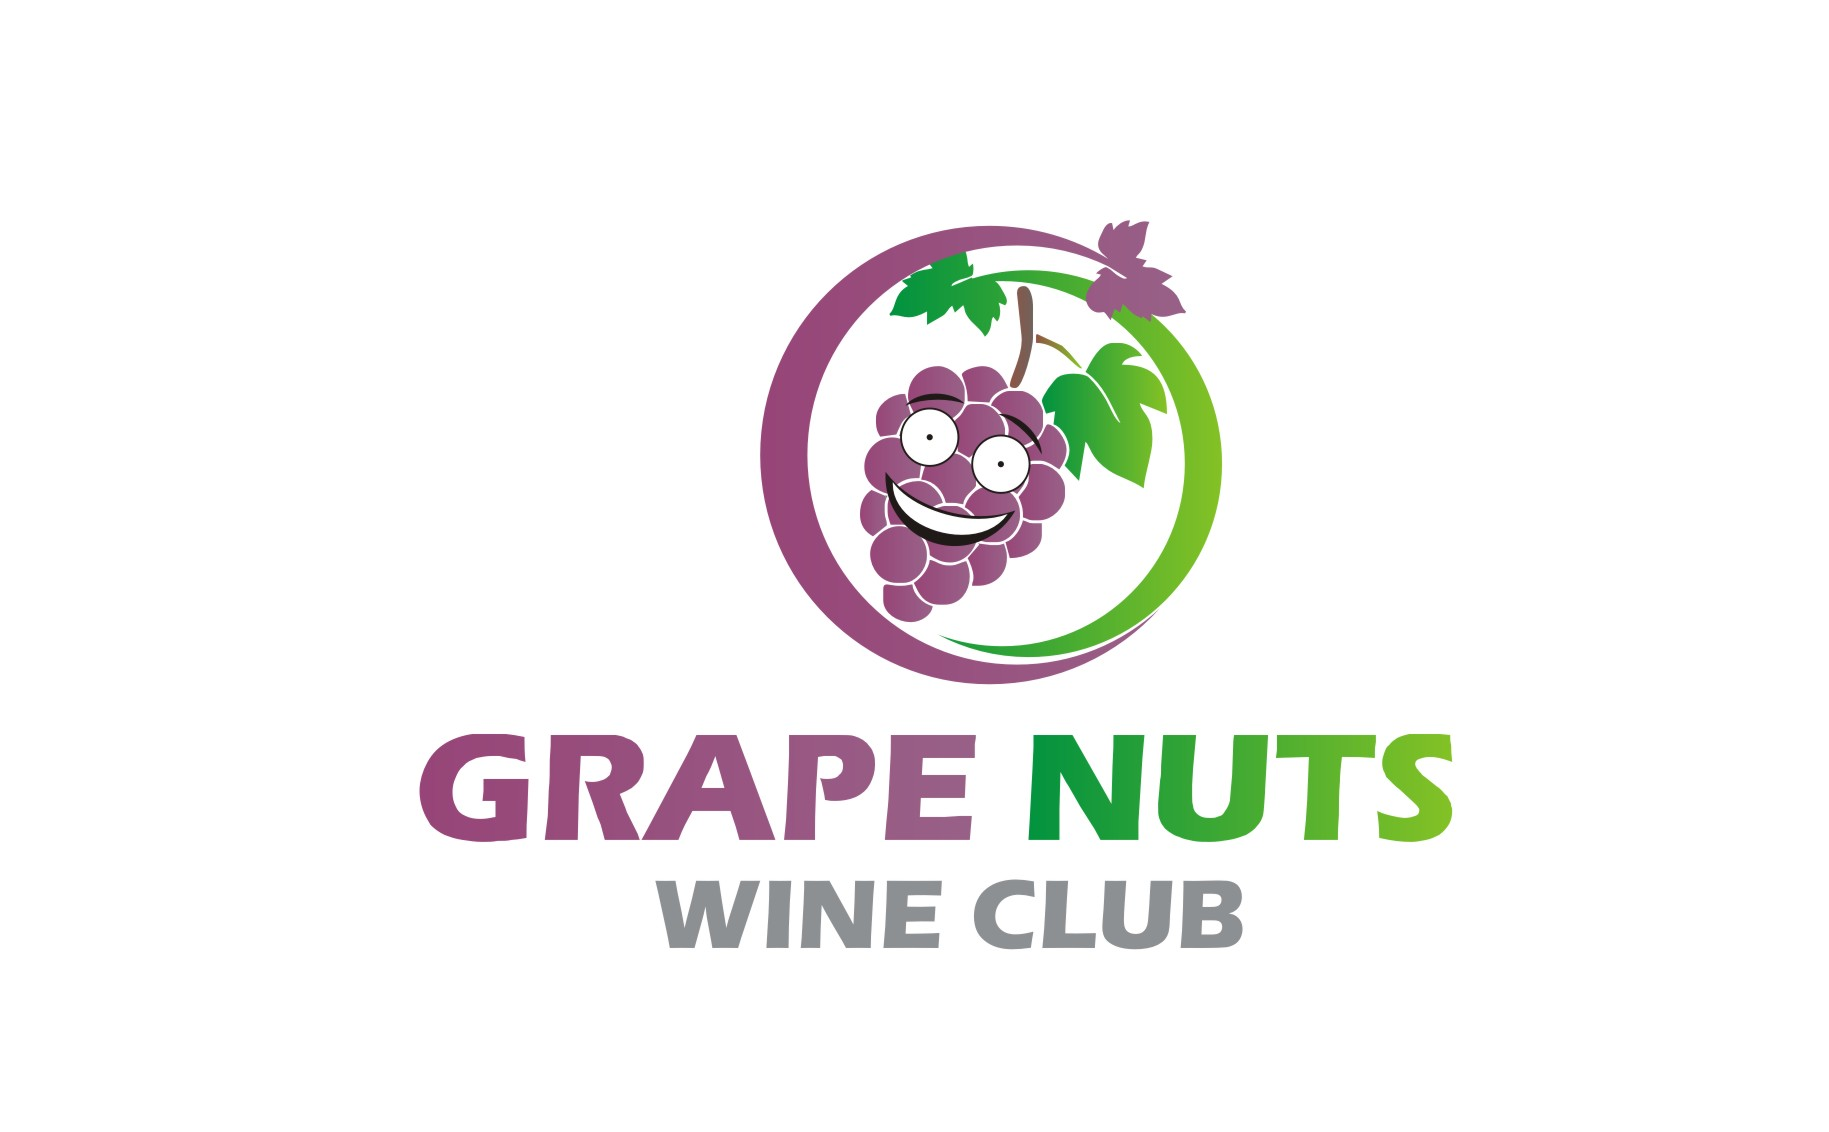 Logo Design by Yuda Hermawan - Entry No. 17 in the Logo Design Contest Artistic Logo Design for Grape Nuts Wine Club.